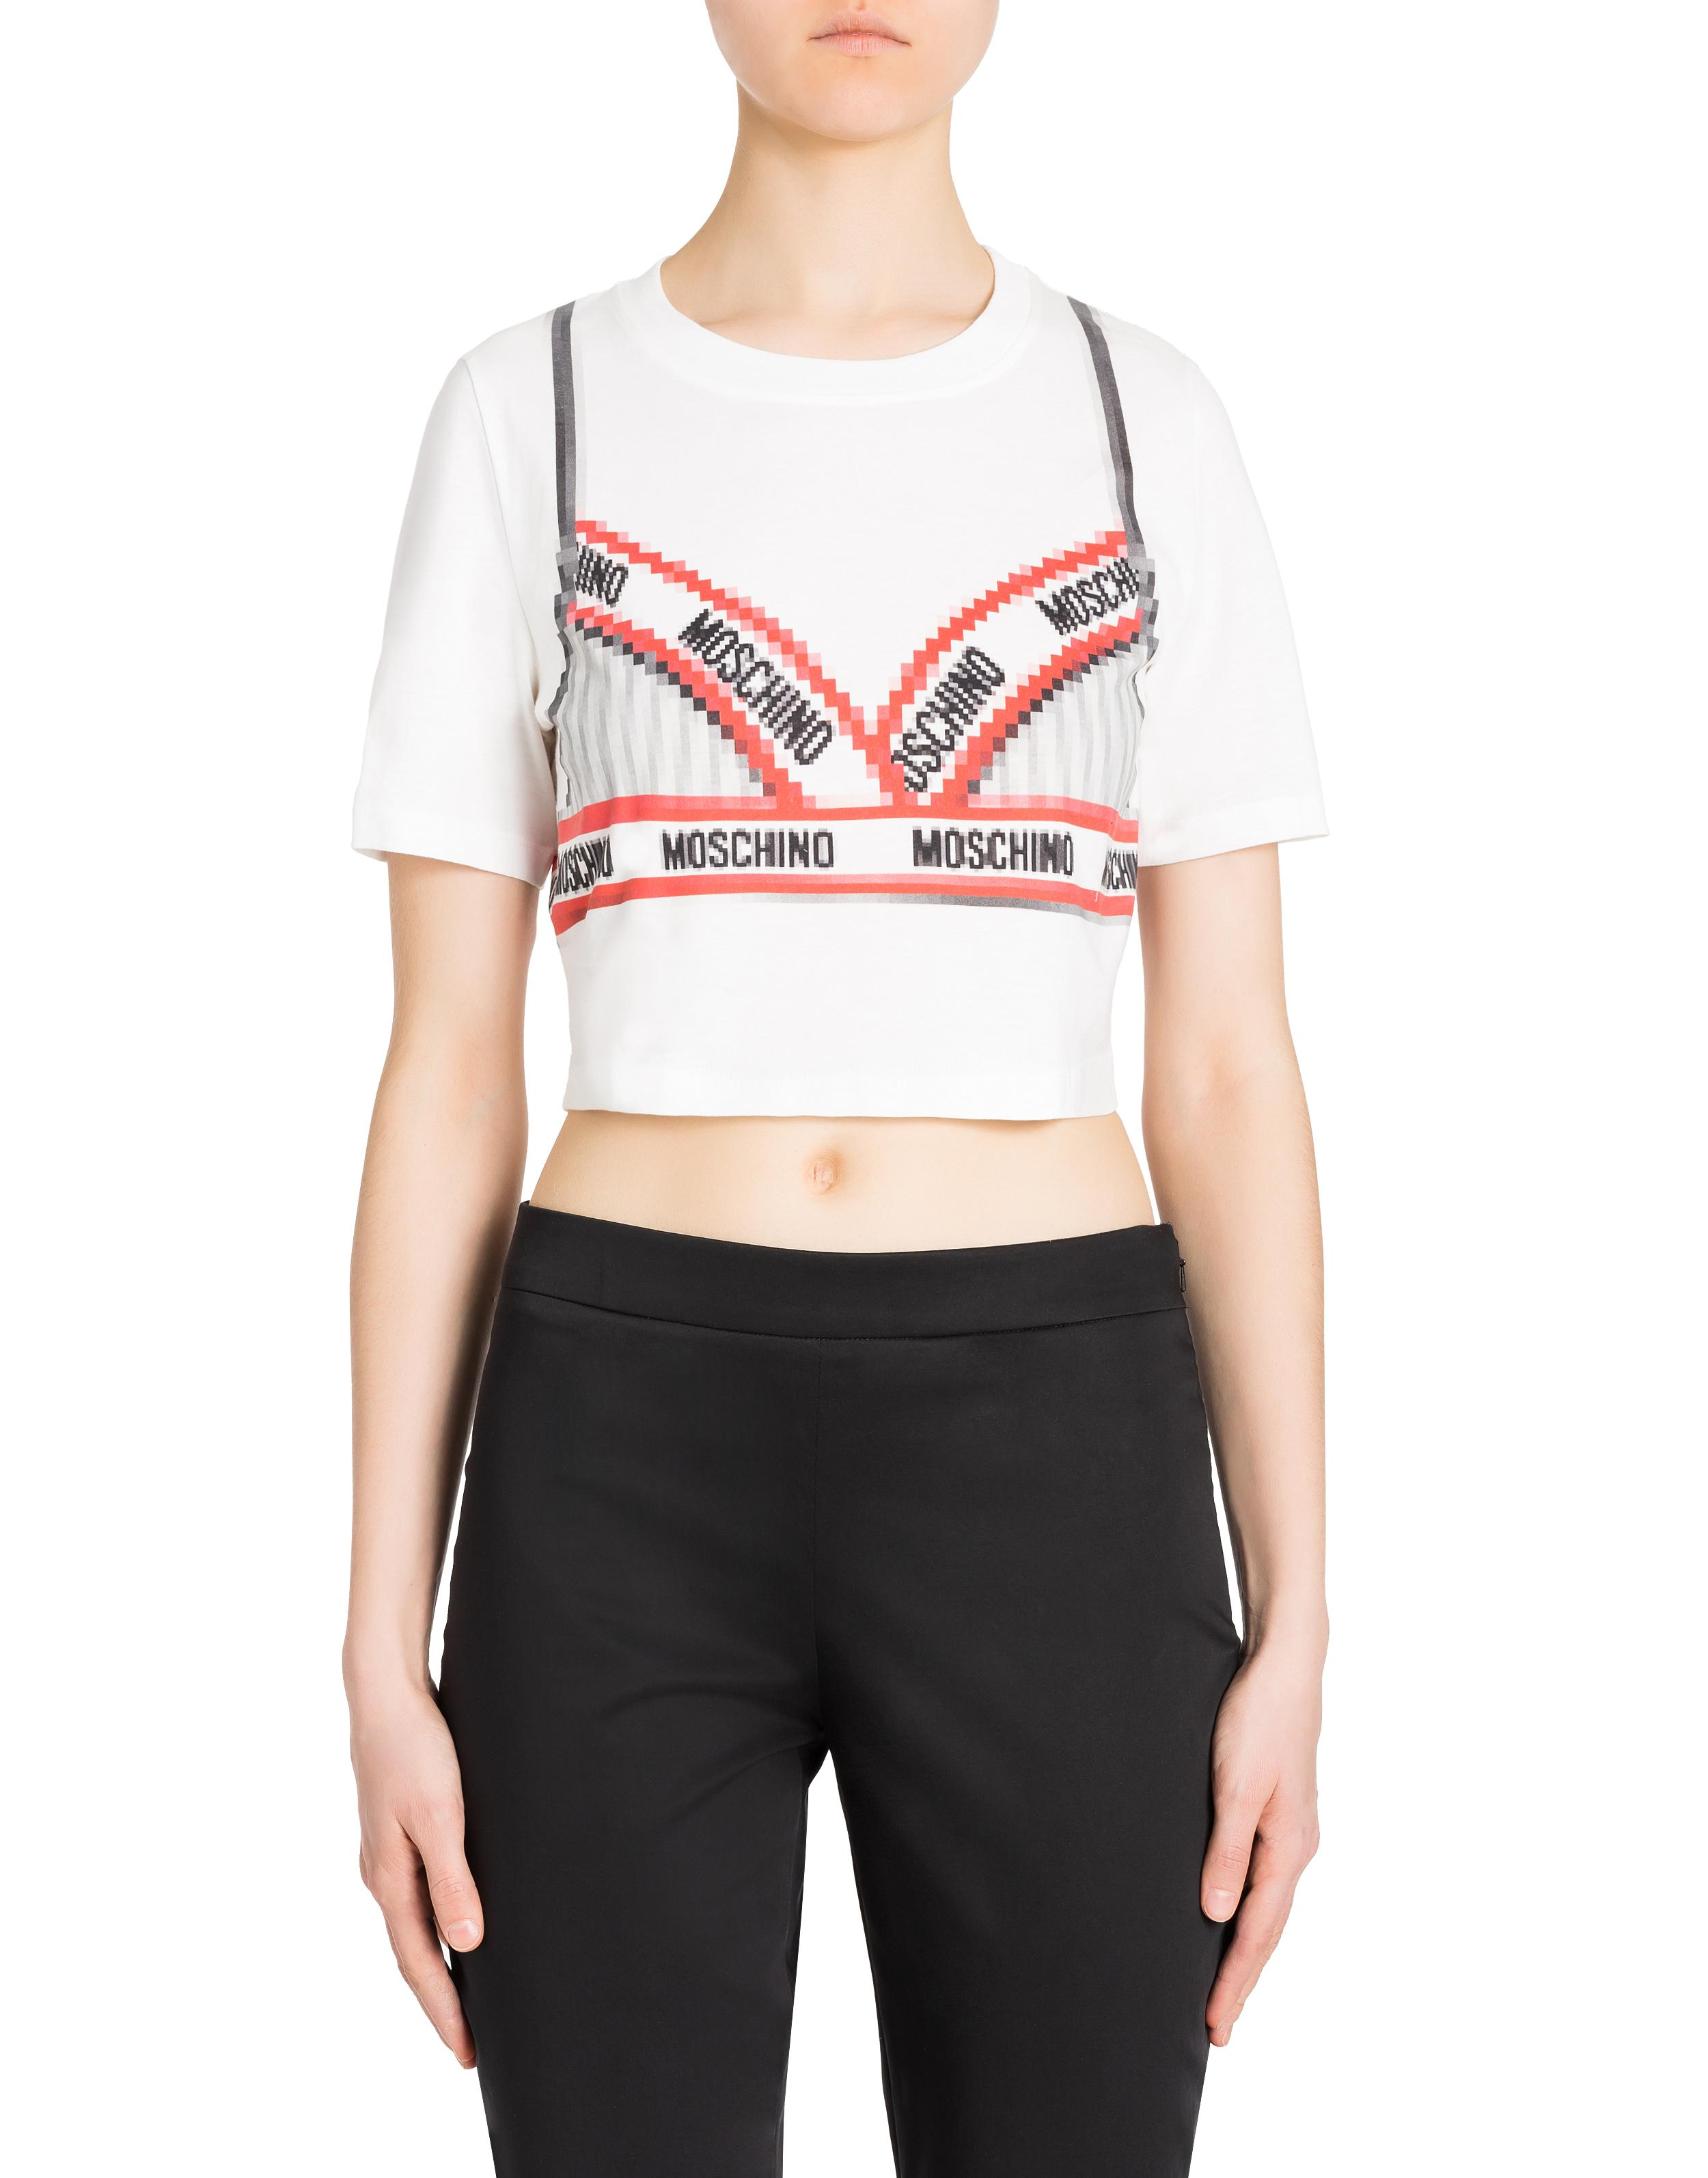 51d6ce589ea5 Moschino Pixel Capsule Cropped T-shirt in White - Lyst